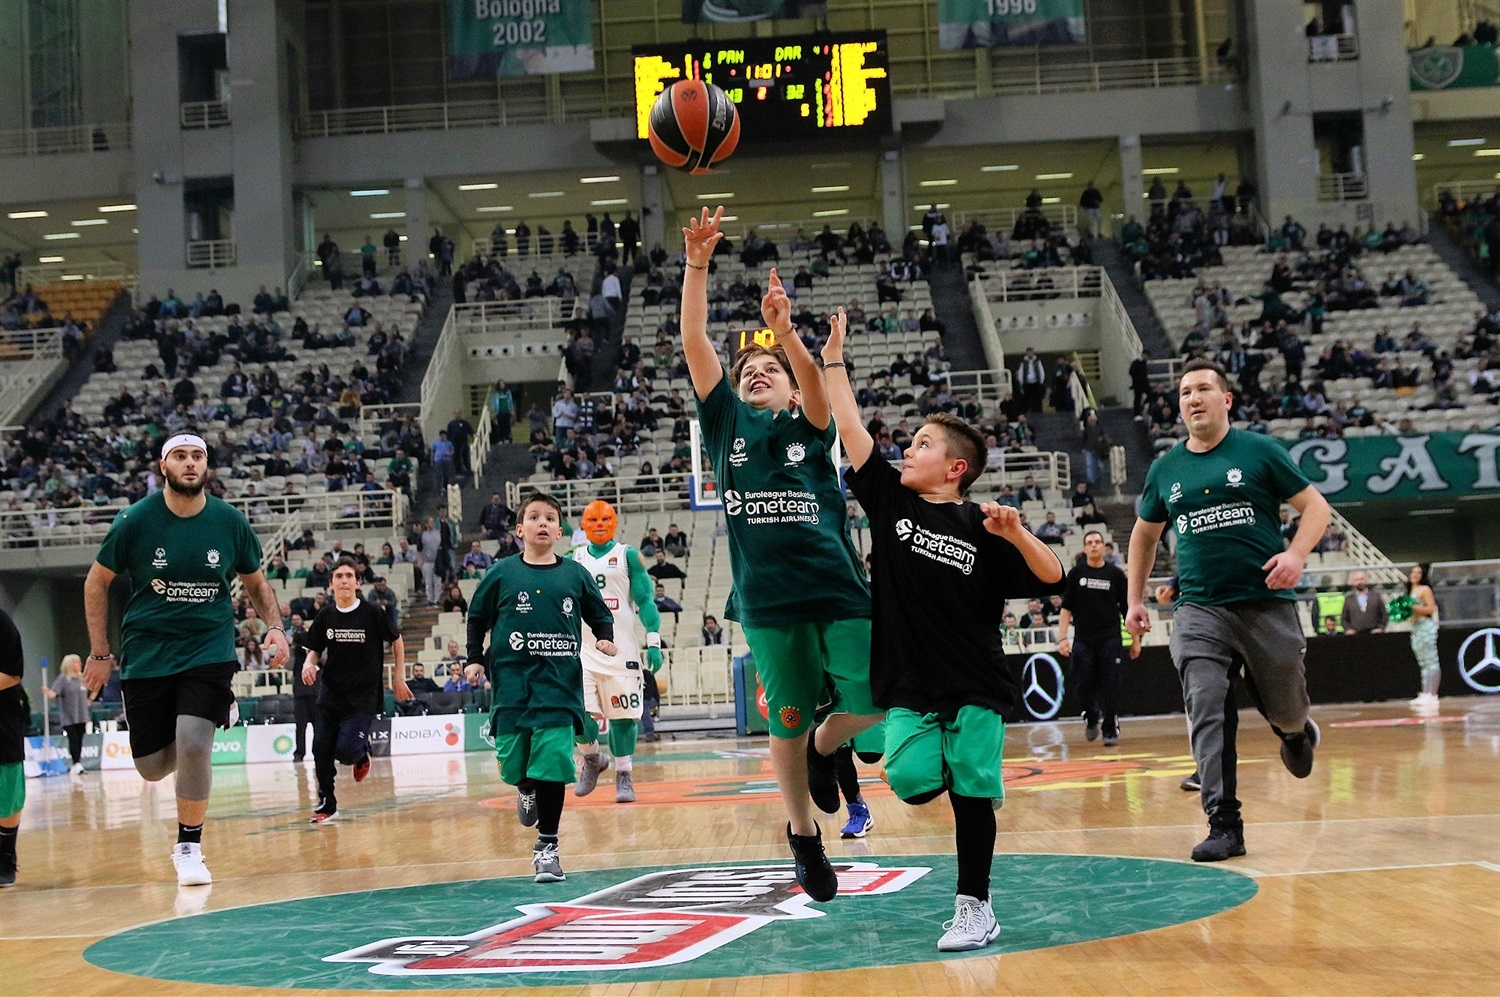 One Team Games - Panathinaikos OPAP Athens - EB18